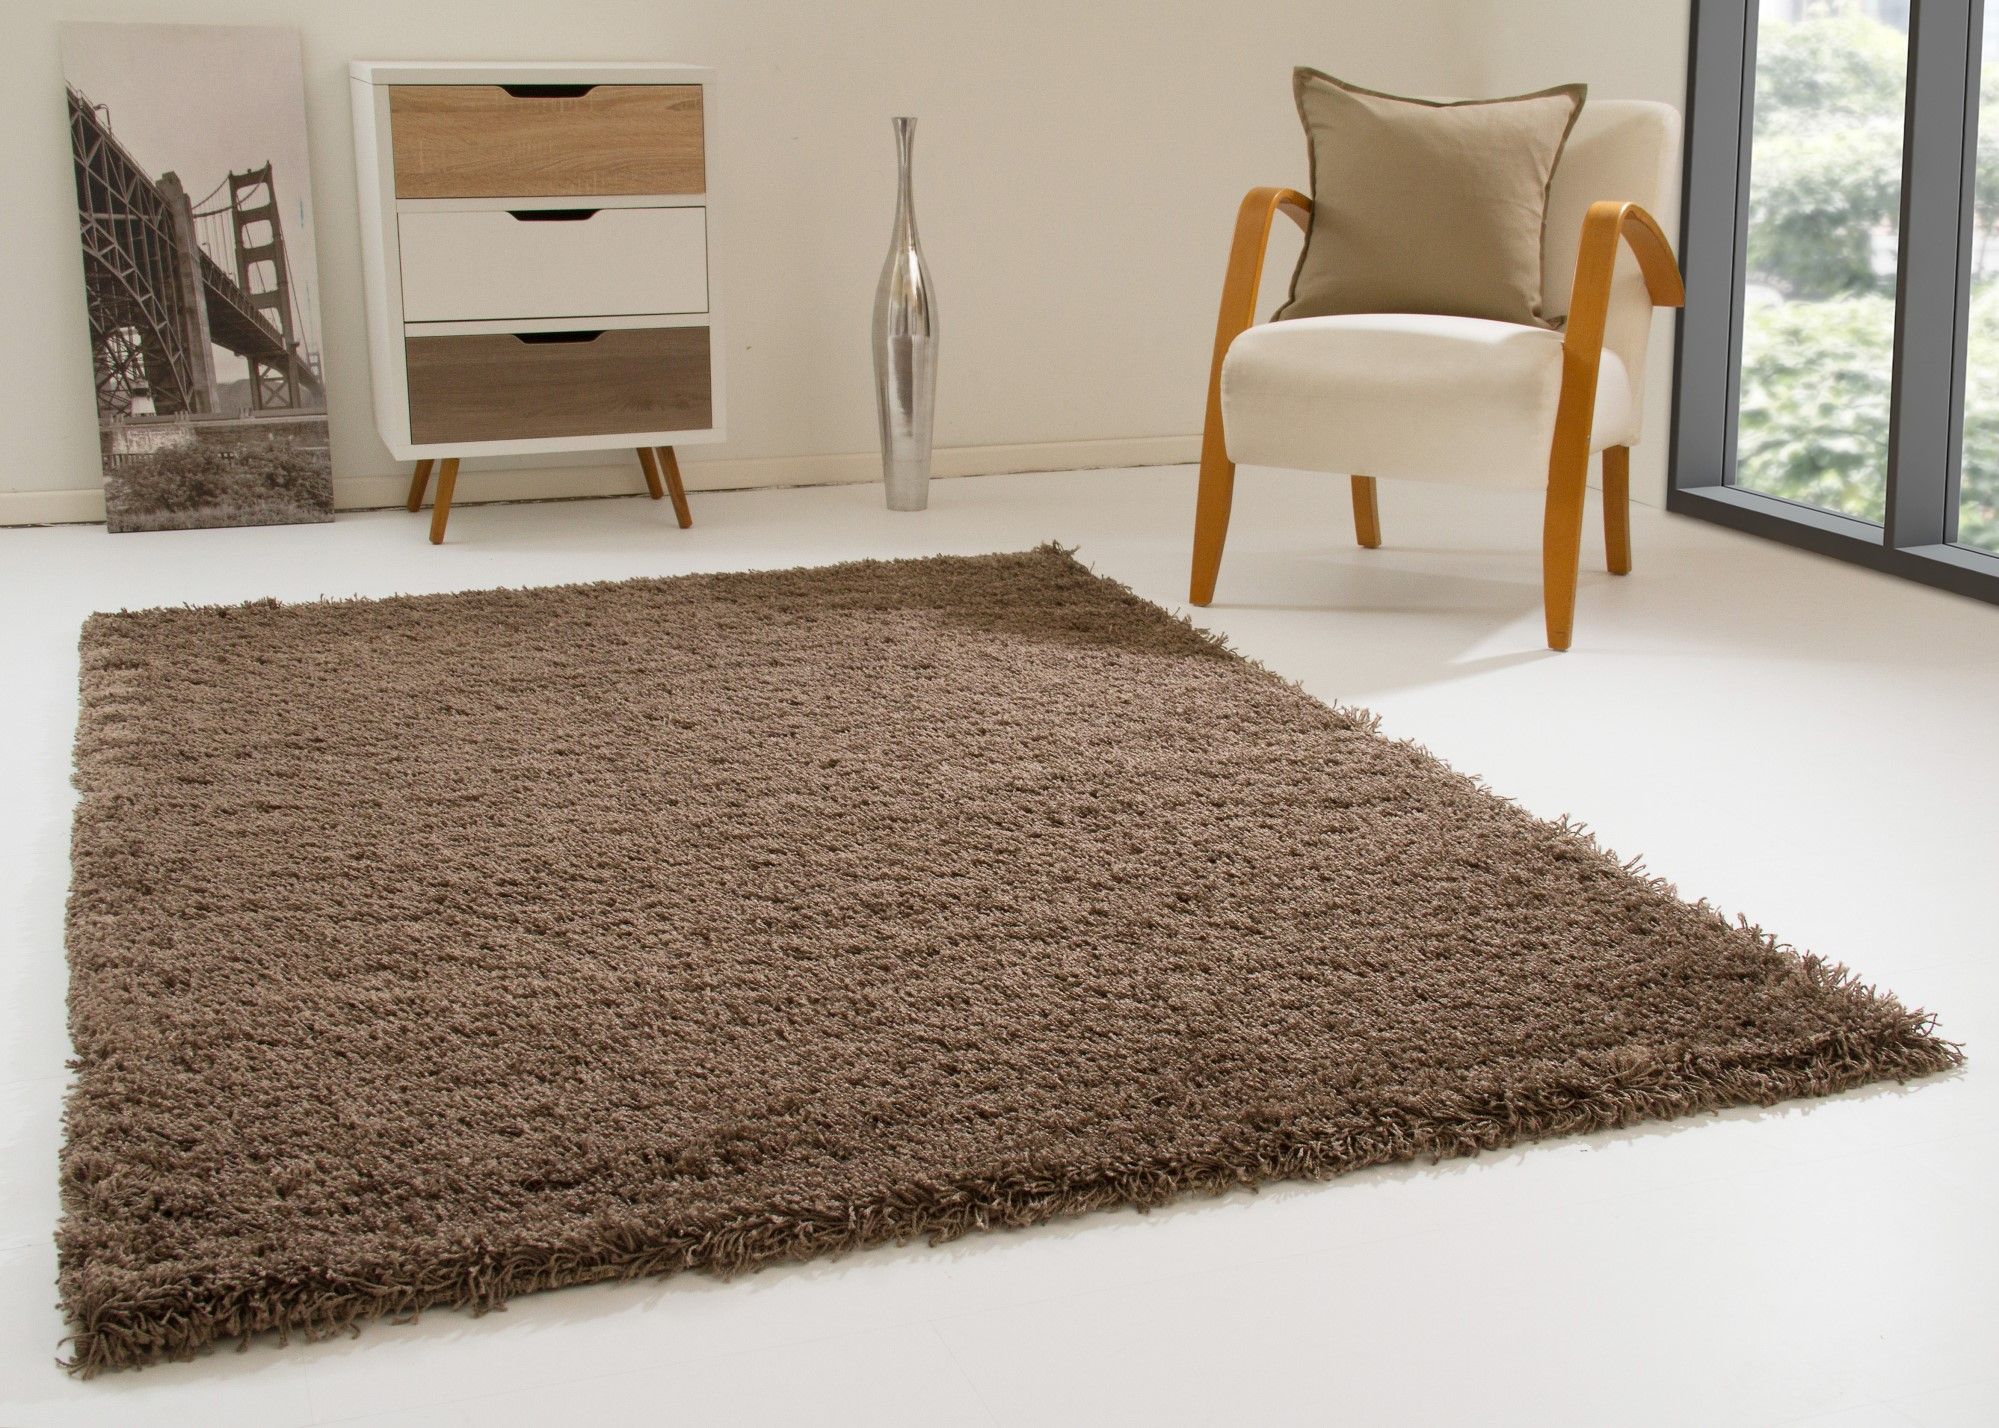 Hochflor Teppich Definition Shaggy Rug Happy Xl Thick Soft Pile Small Extra Large New